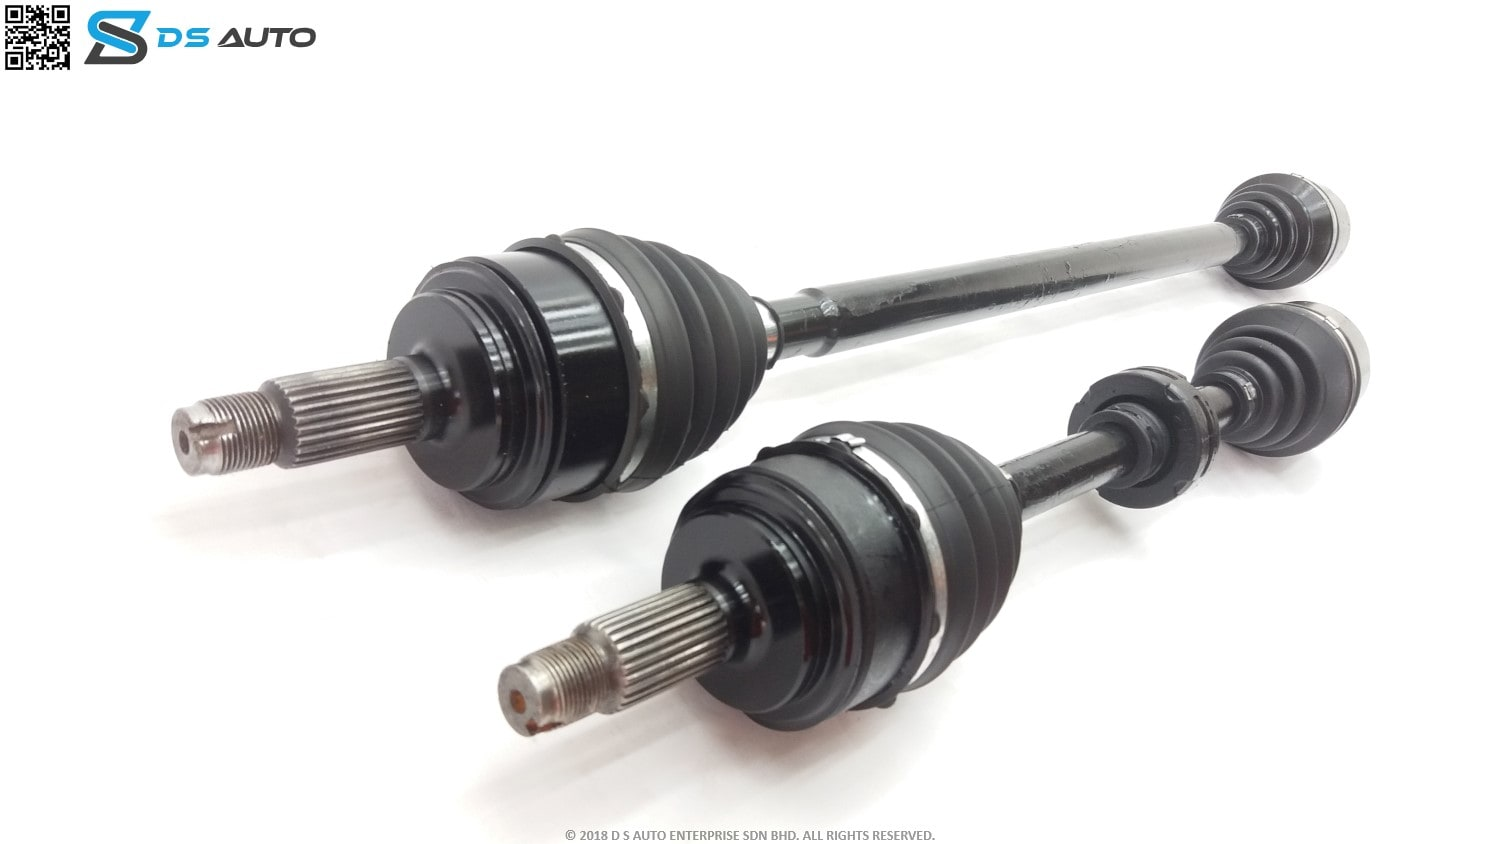 This is a generic Honda drive shaft set, showcasing both the drive shafts from the side view.